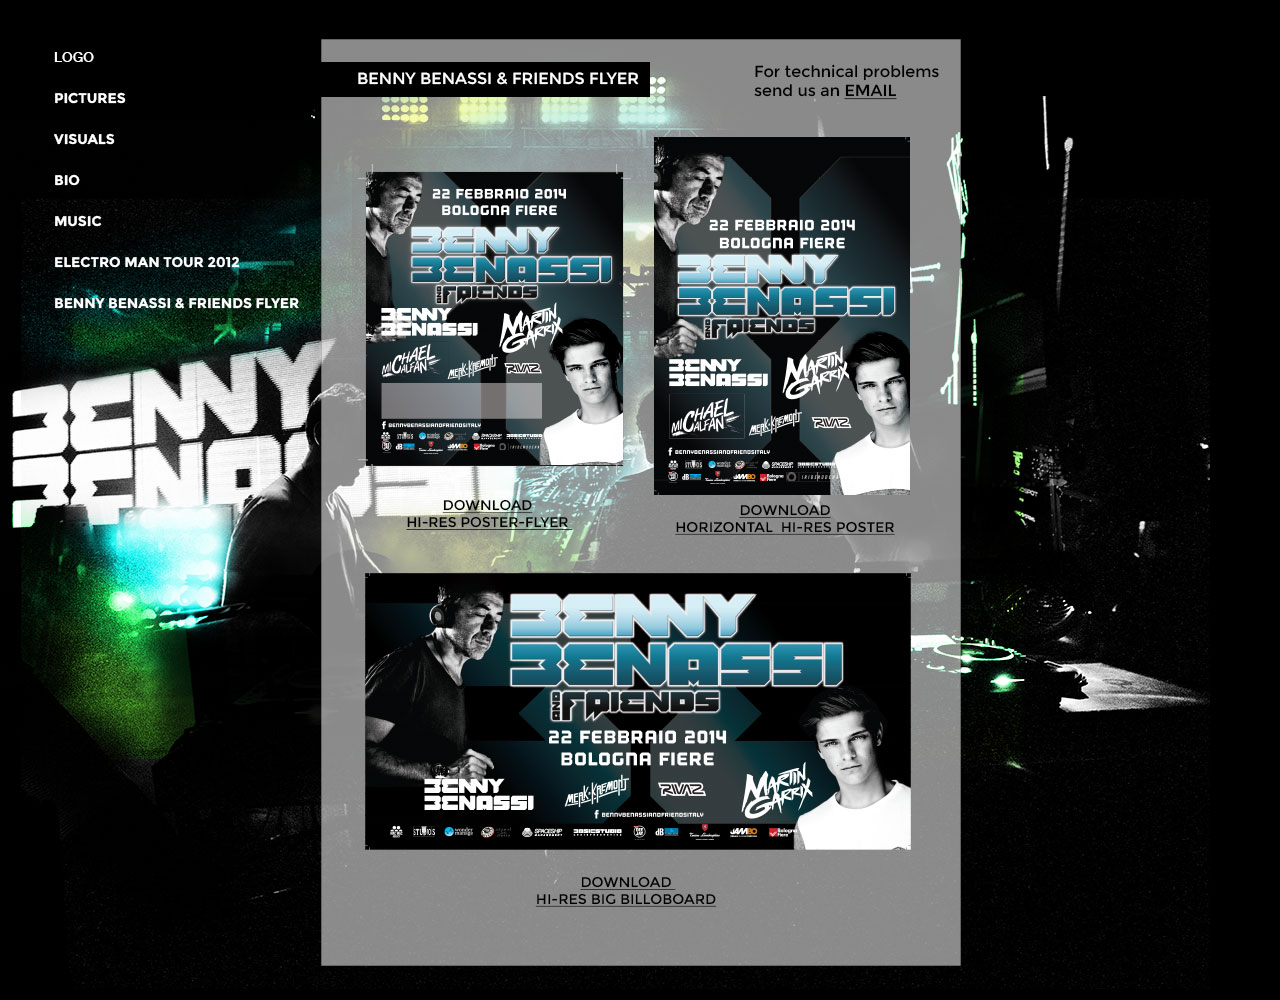 Benny_Benassi_Press_internal2